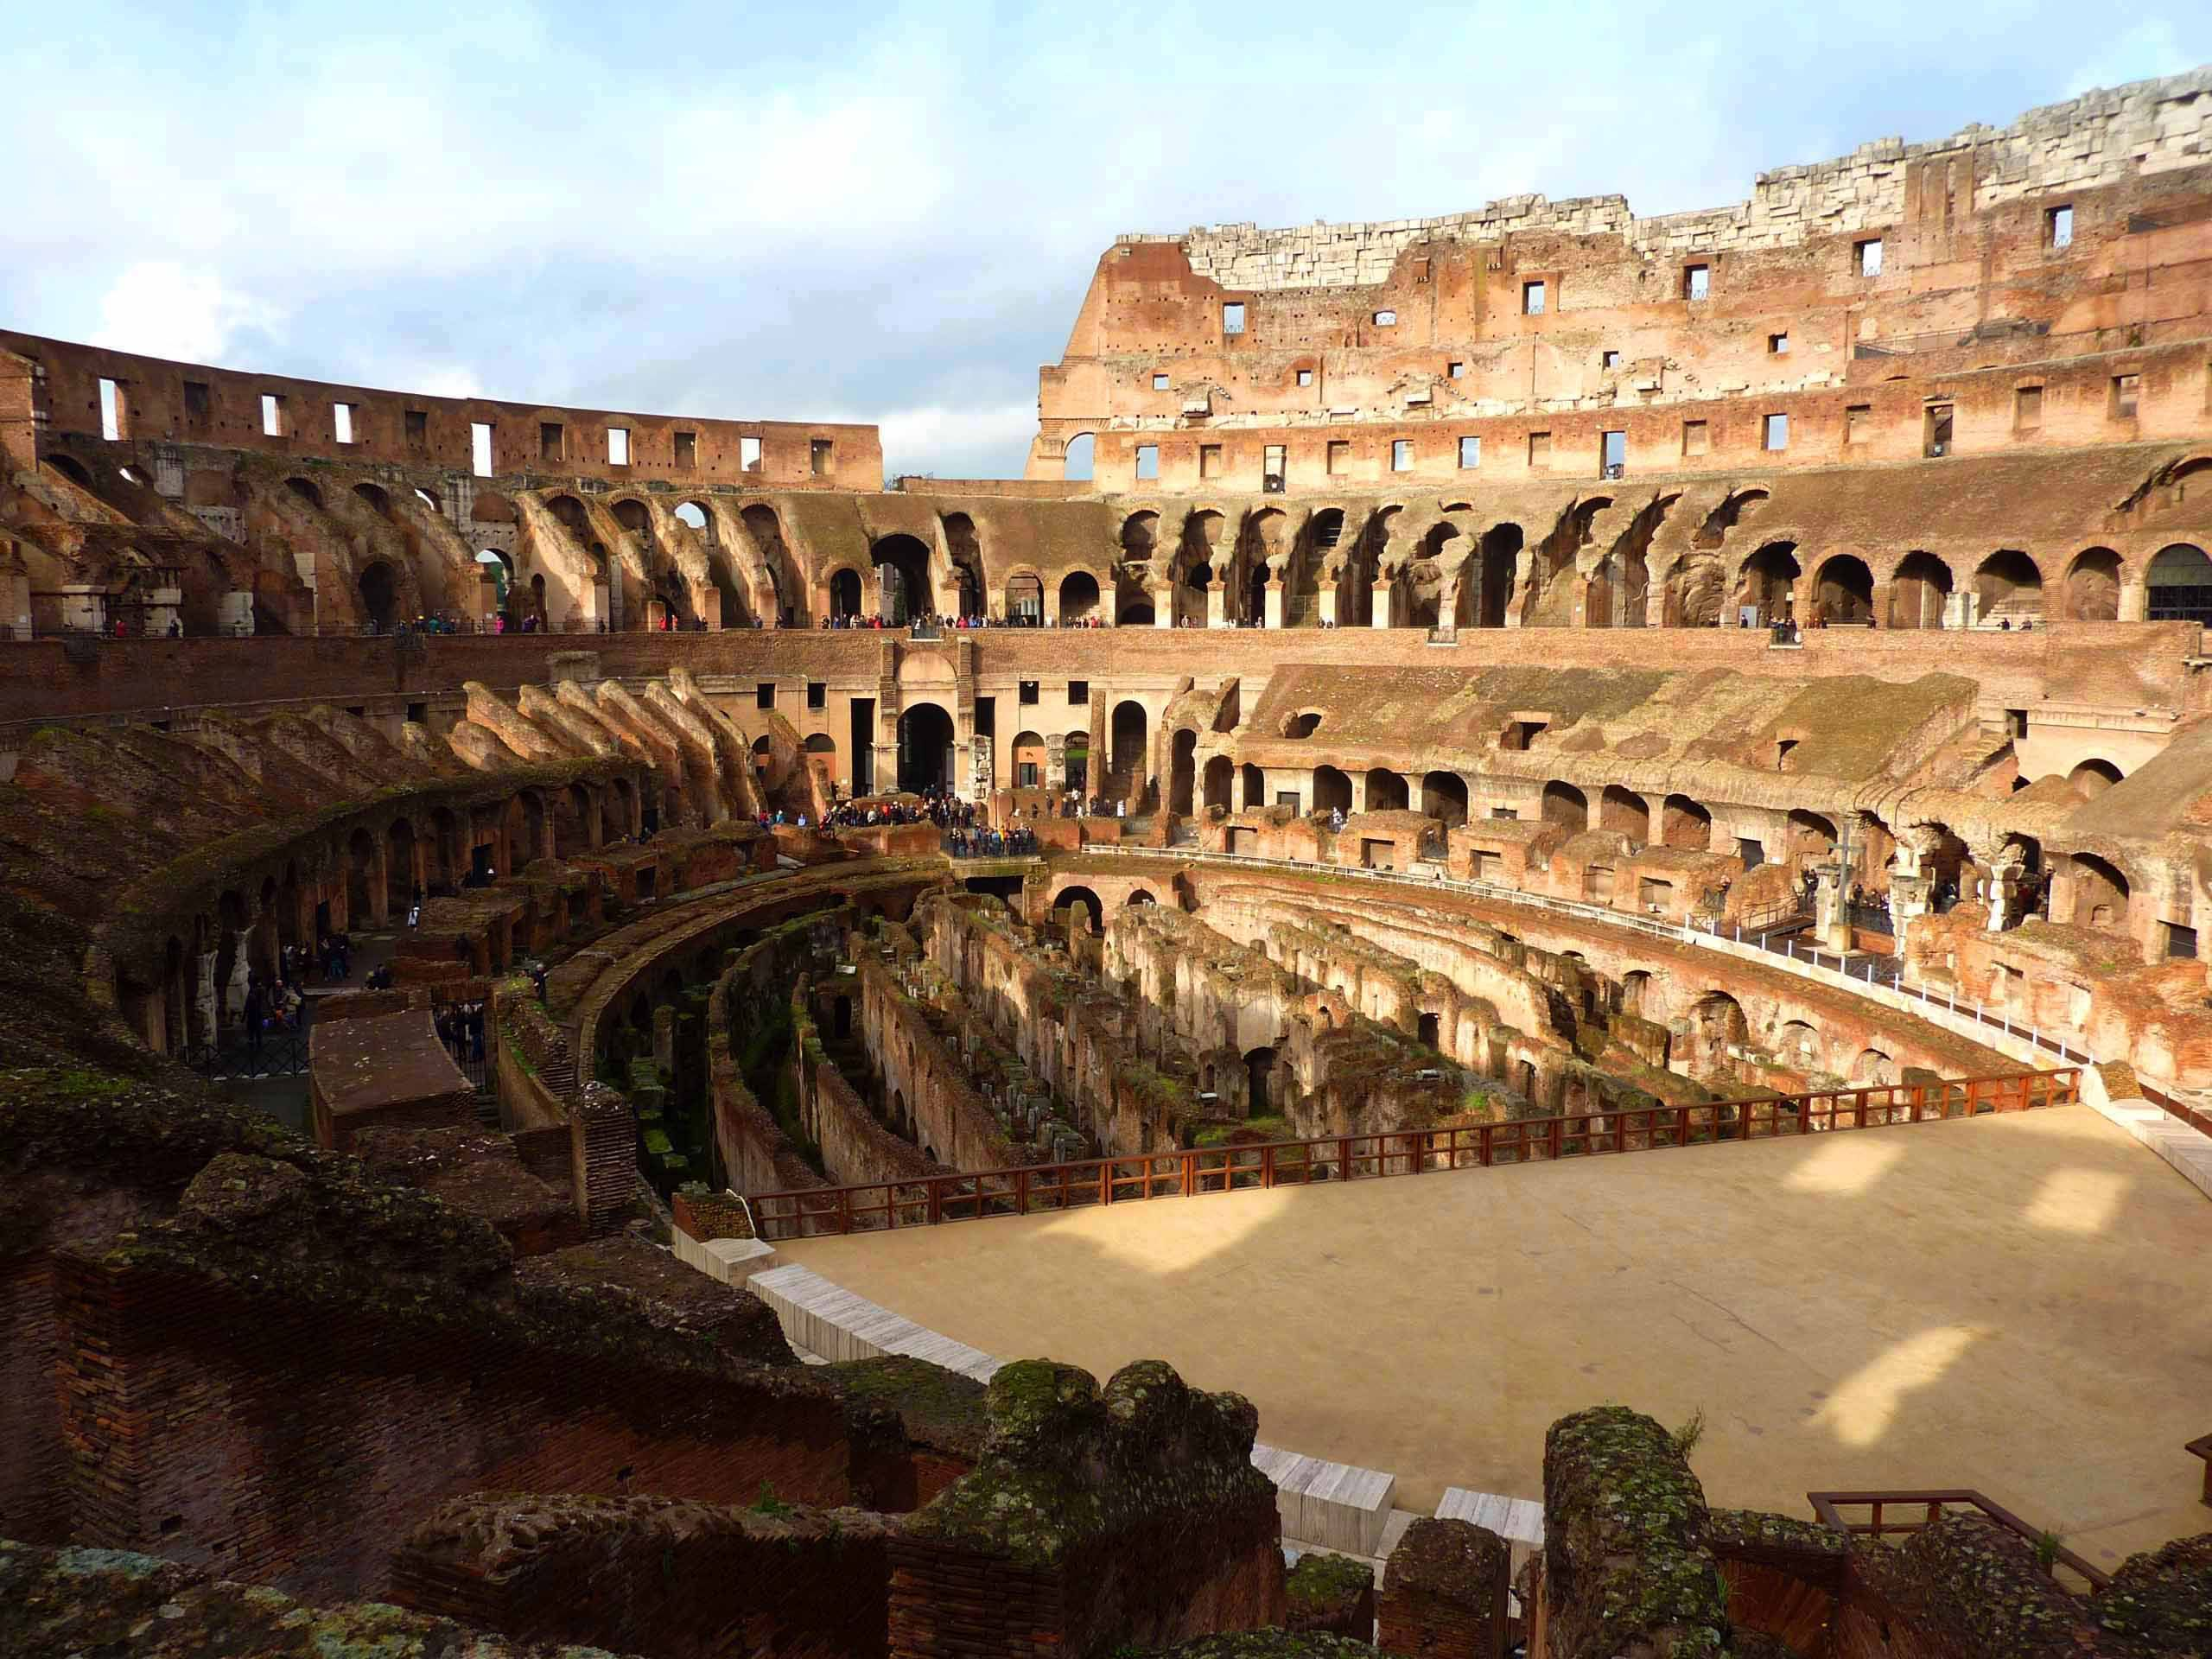 The Pit of Hell inside the Colosseum